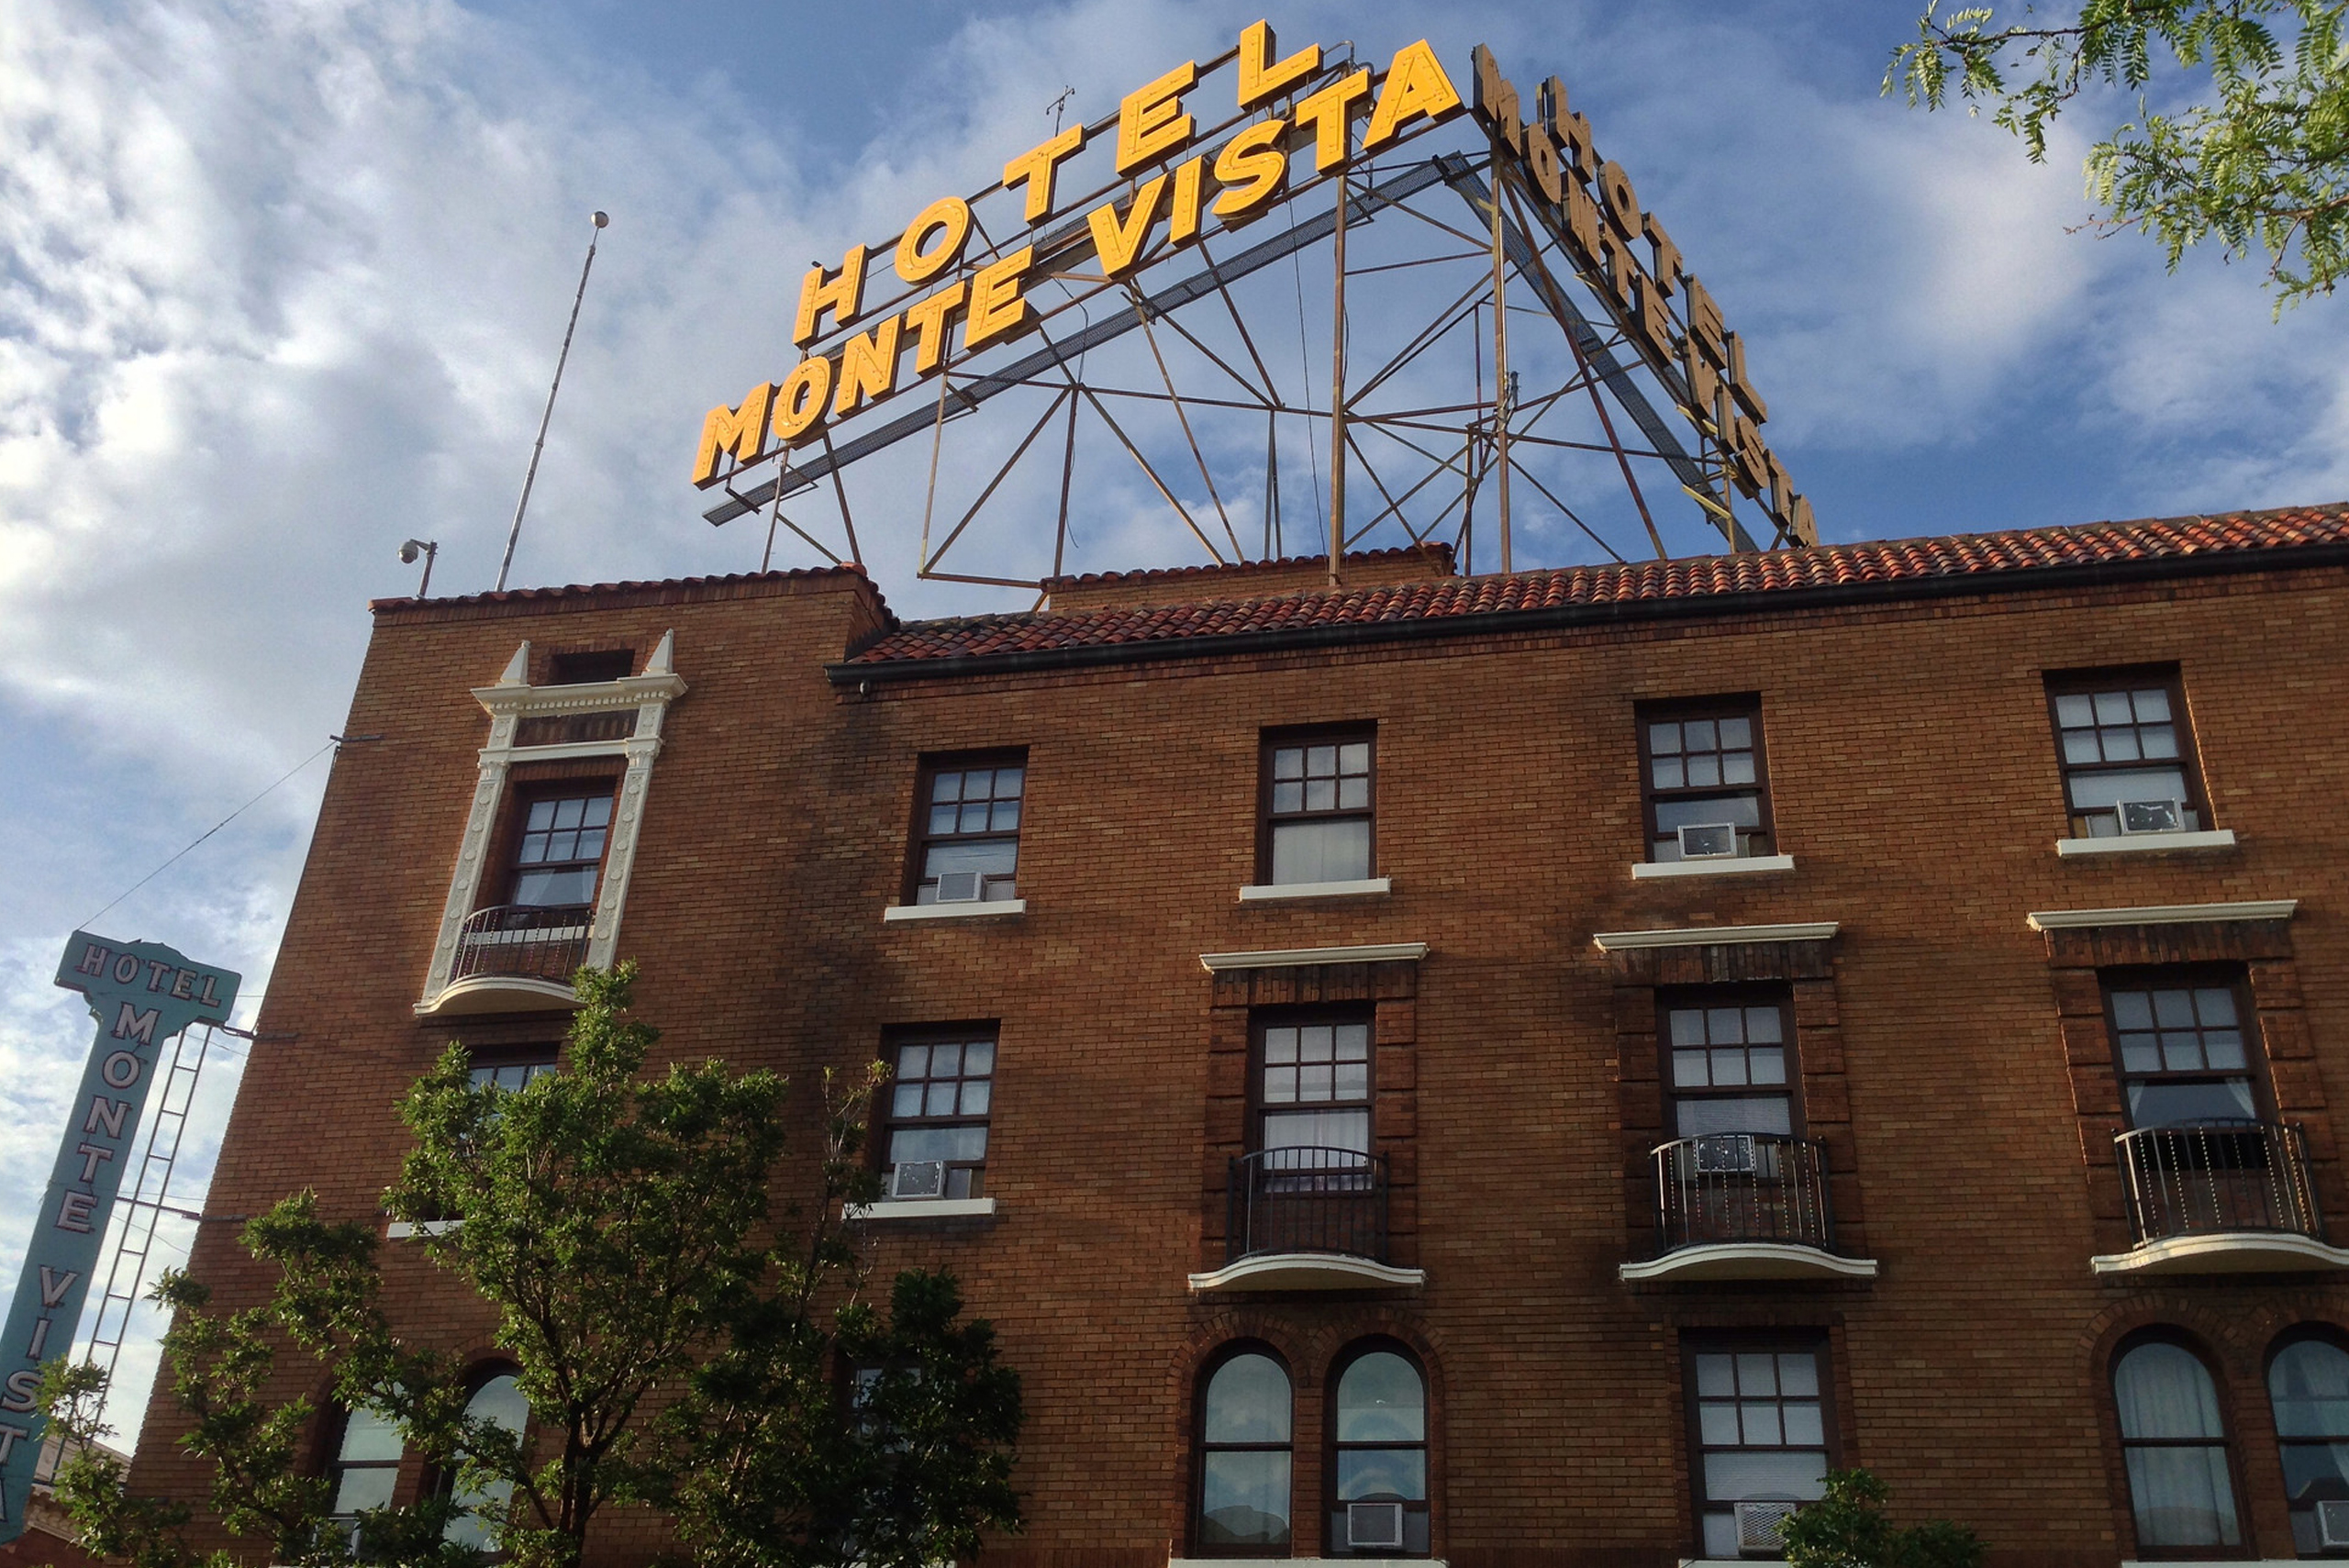 Photo of Hotel Monte Vista in Flagstaff Arizona